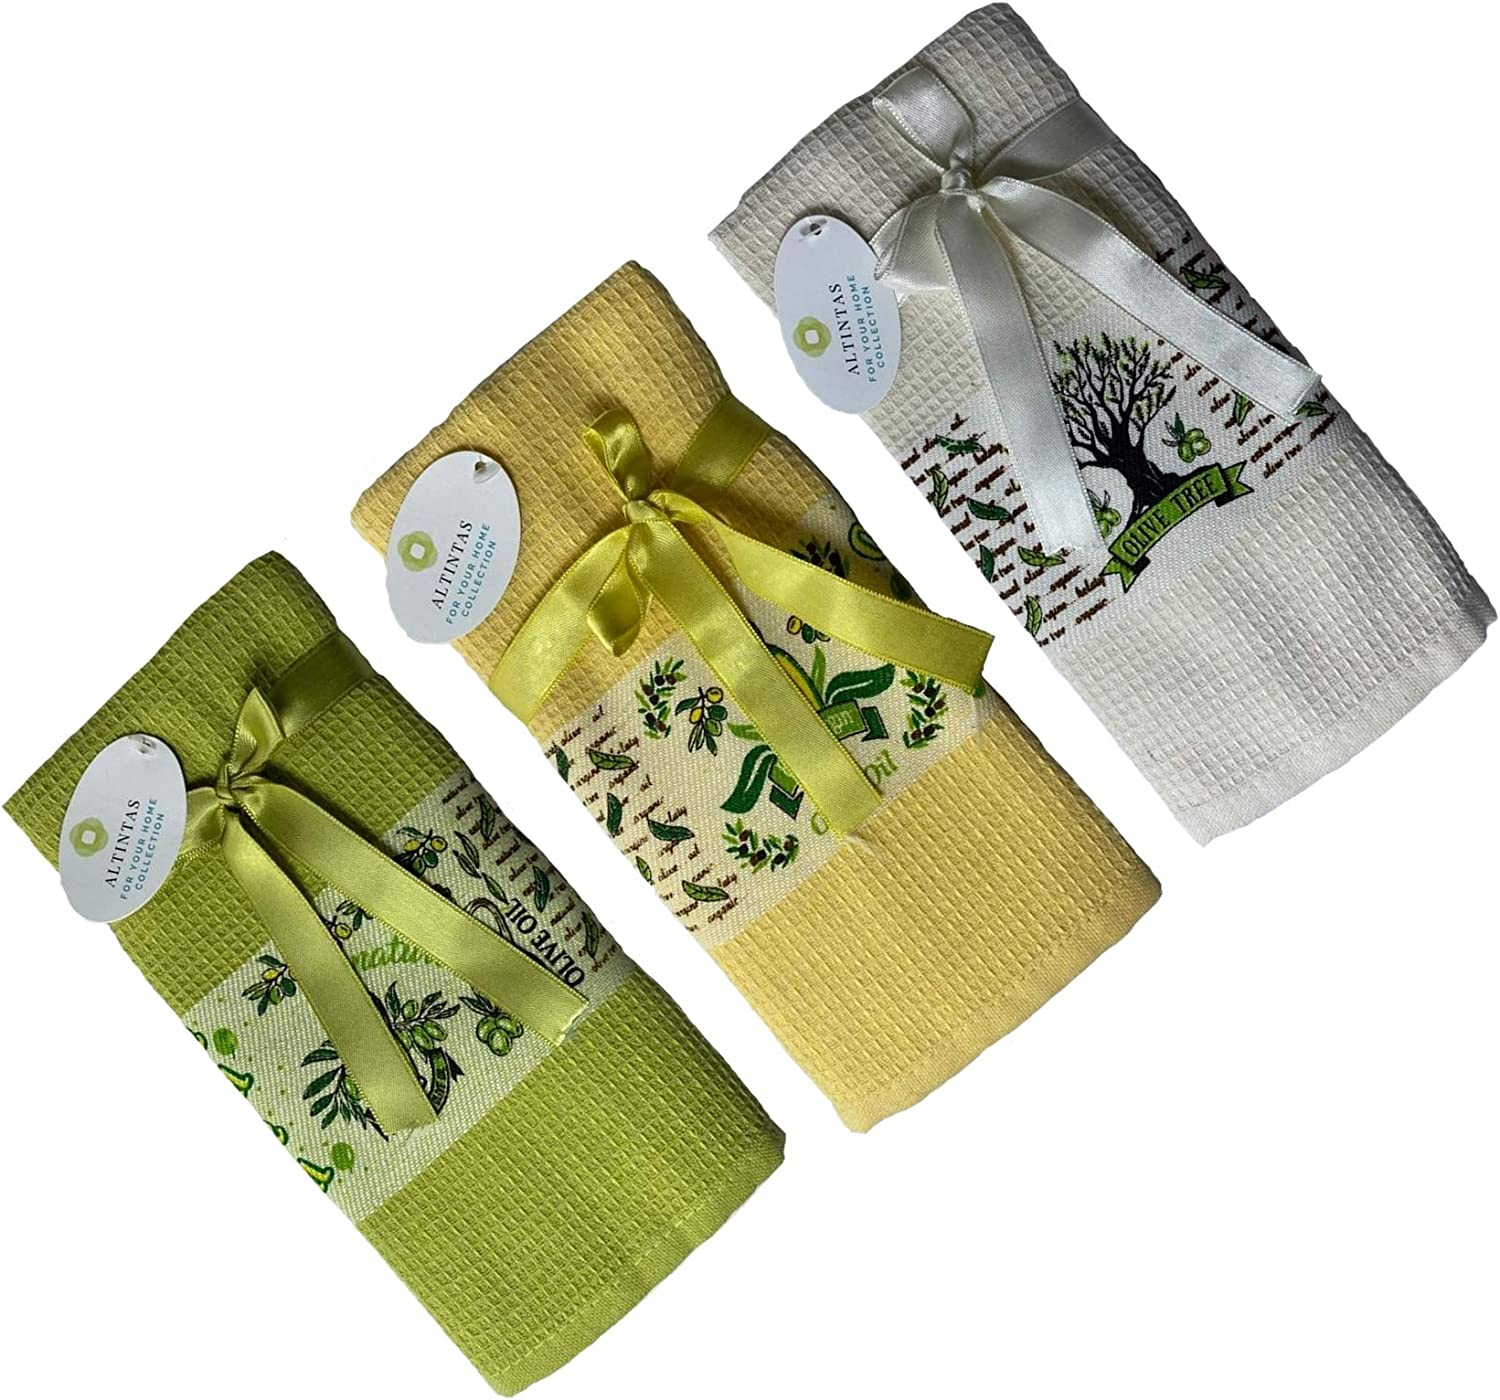 ALTINTAS Kitchen Hand Towels,17 X 26 in - Absorbent Dish Cloths for Kitchen,Drying & Cleaning,Tea & bar Towels,100% Cotton Waffle Weave,Multi-Purpose & Decorative for Home,Set of 3,Olive Oil Design